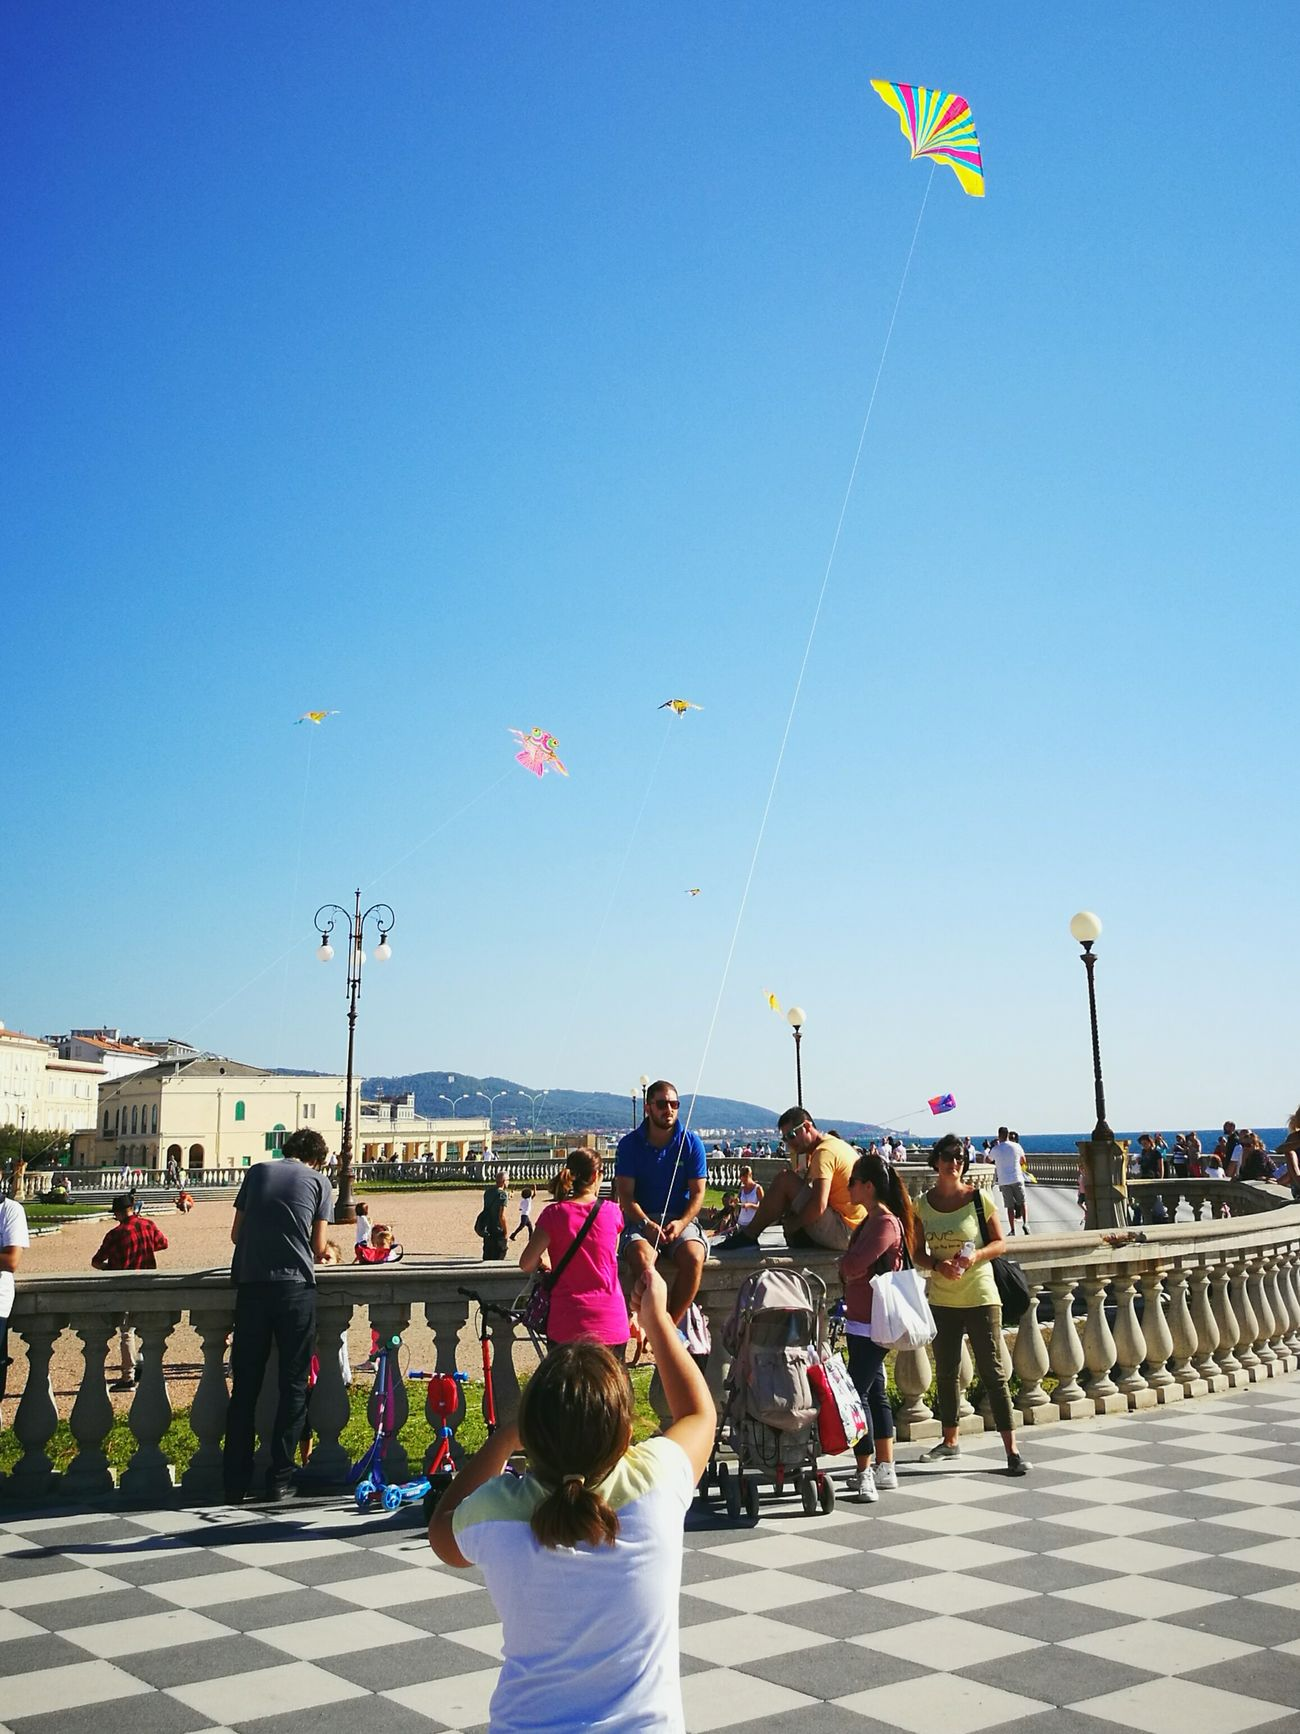 Clear Sky Blue Large Group Of People Person Sunny Childhood Flying A Kite Kites In Motion Clear Sky Kitefestival Vibrant Color People And Places la felicità è....2